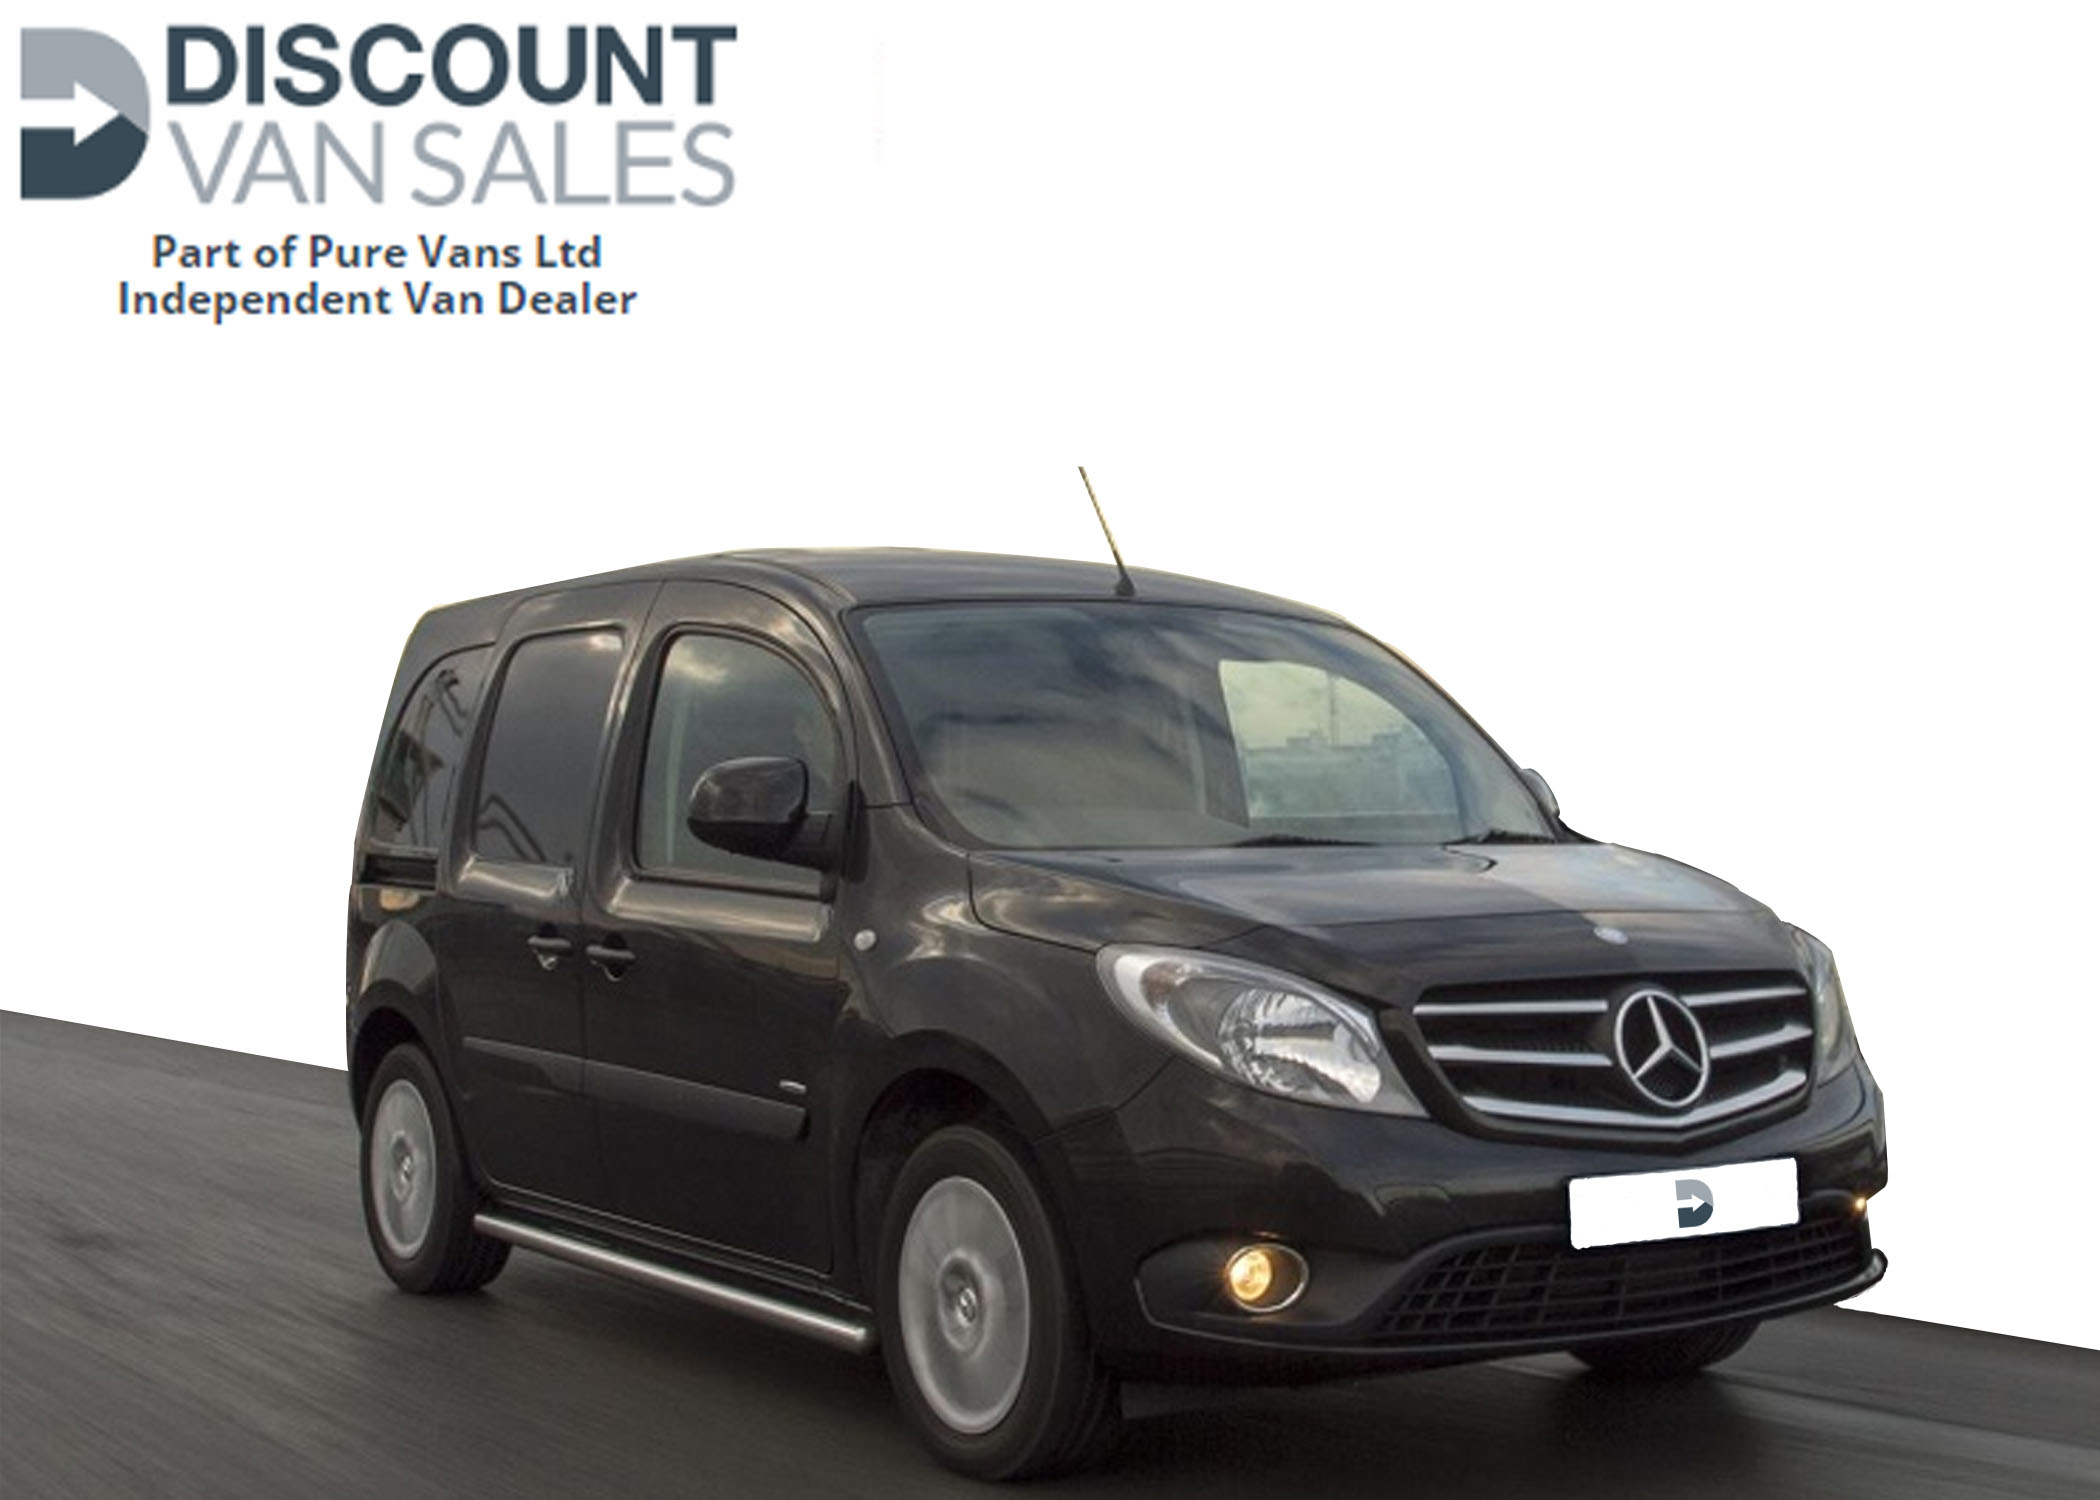 mercedes citan extra long discount van sales. Black Bedroom Furniture Sets. Home Design Ideas